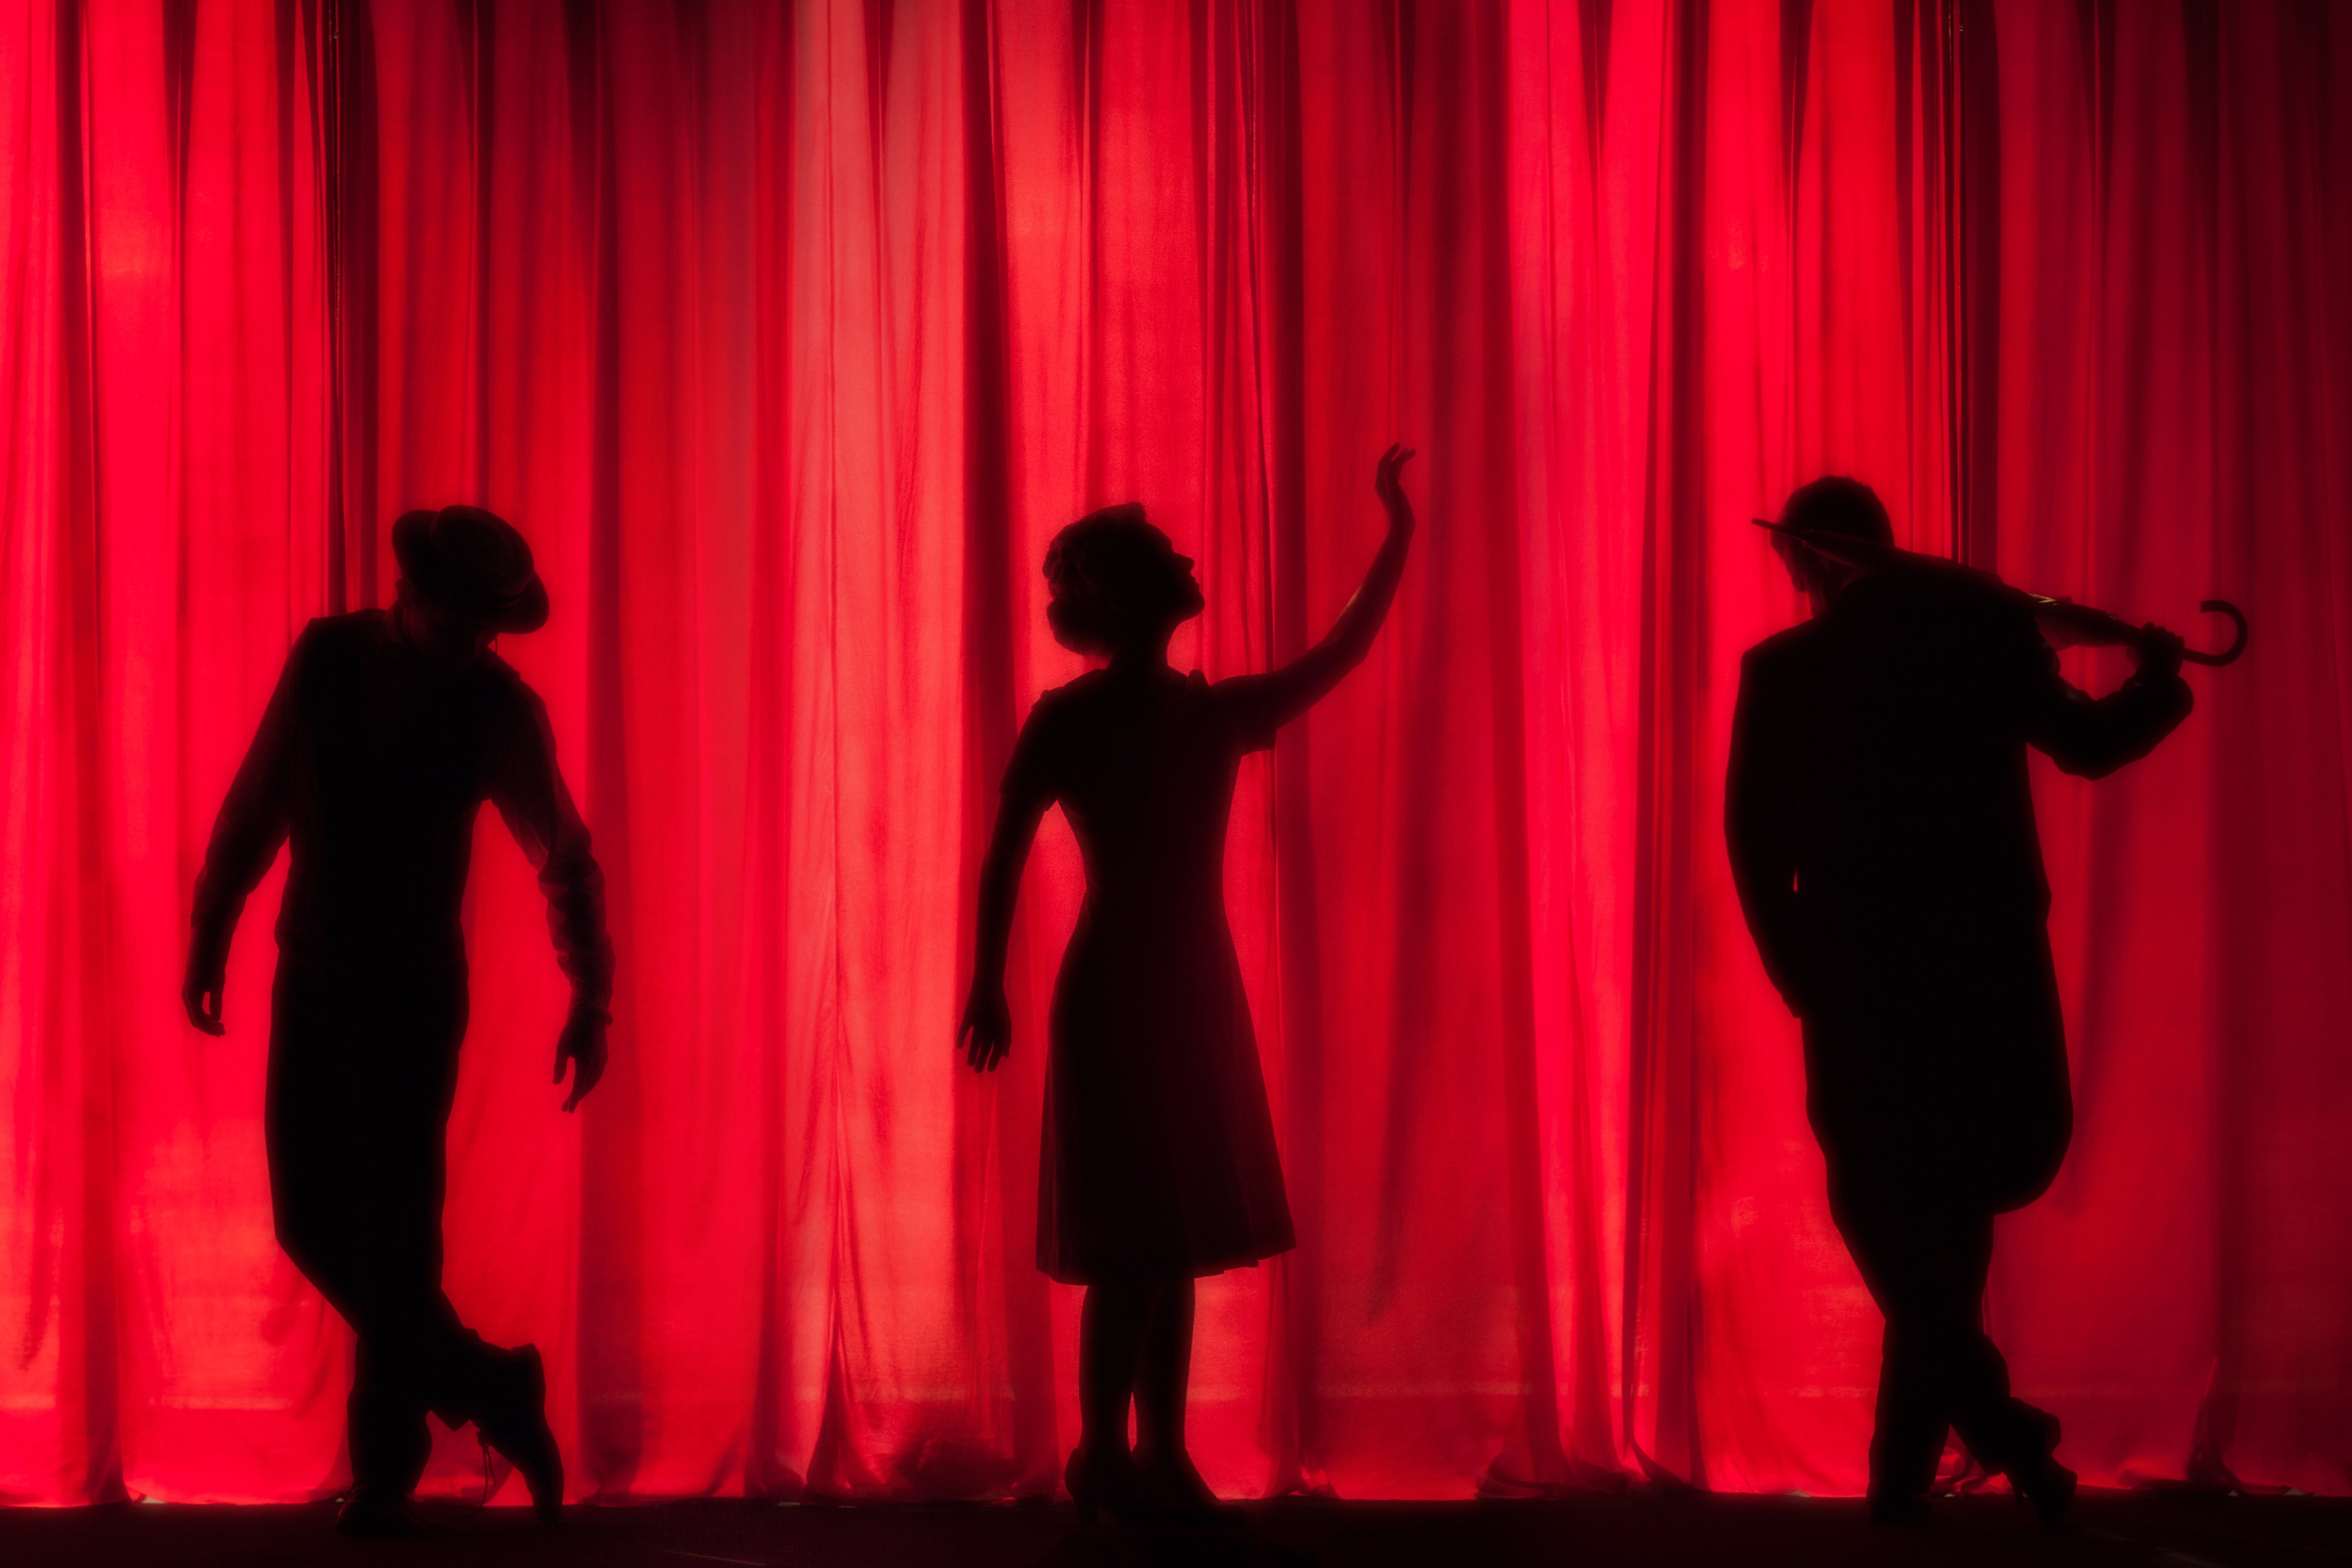 Three actors stand onstage and perform for an audience